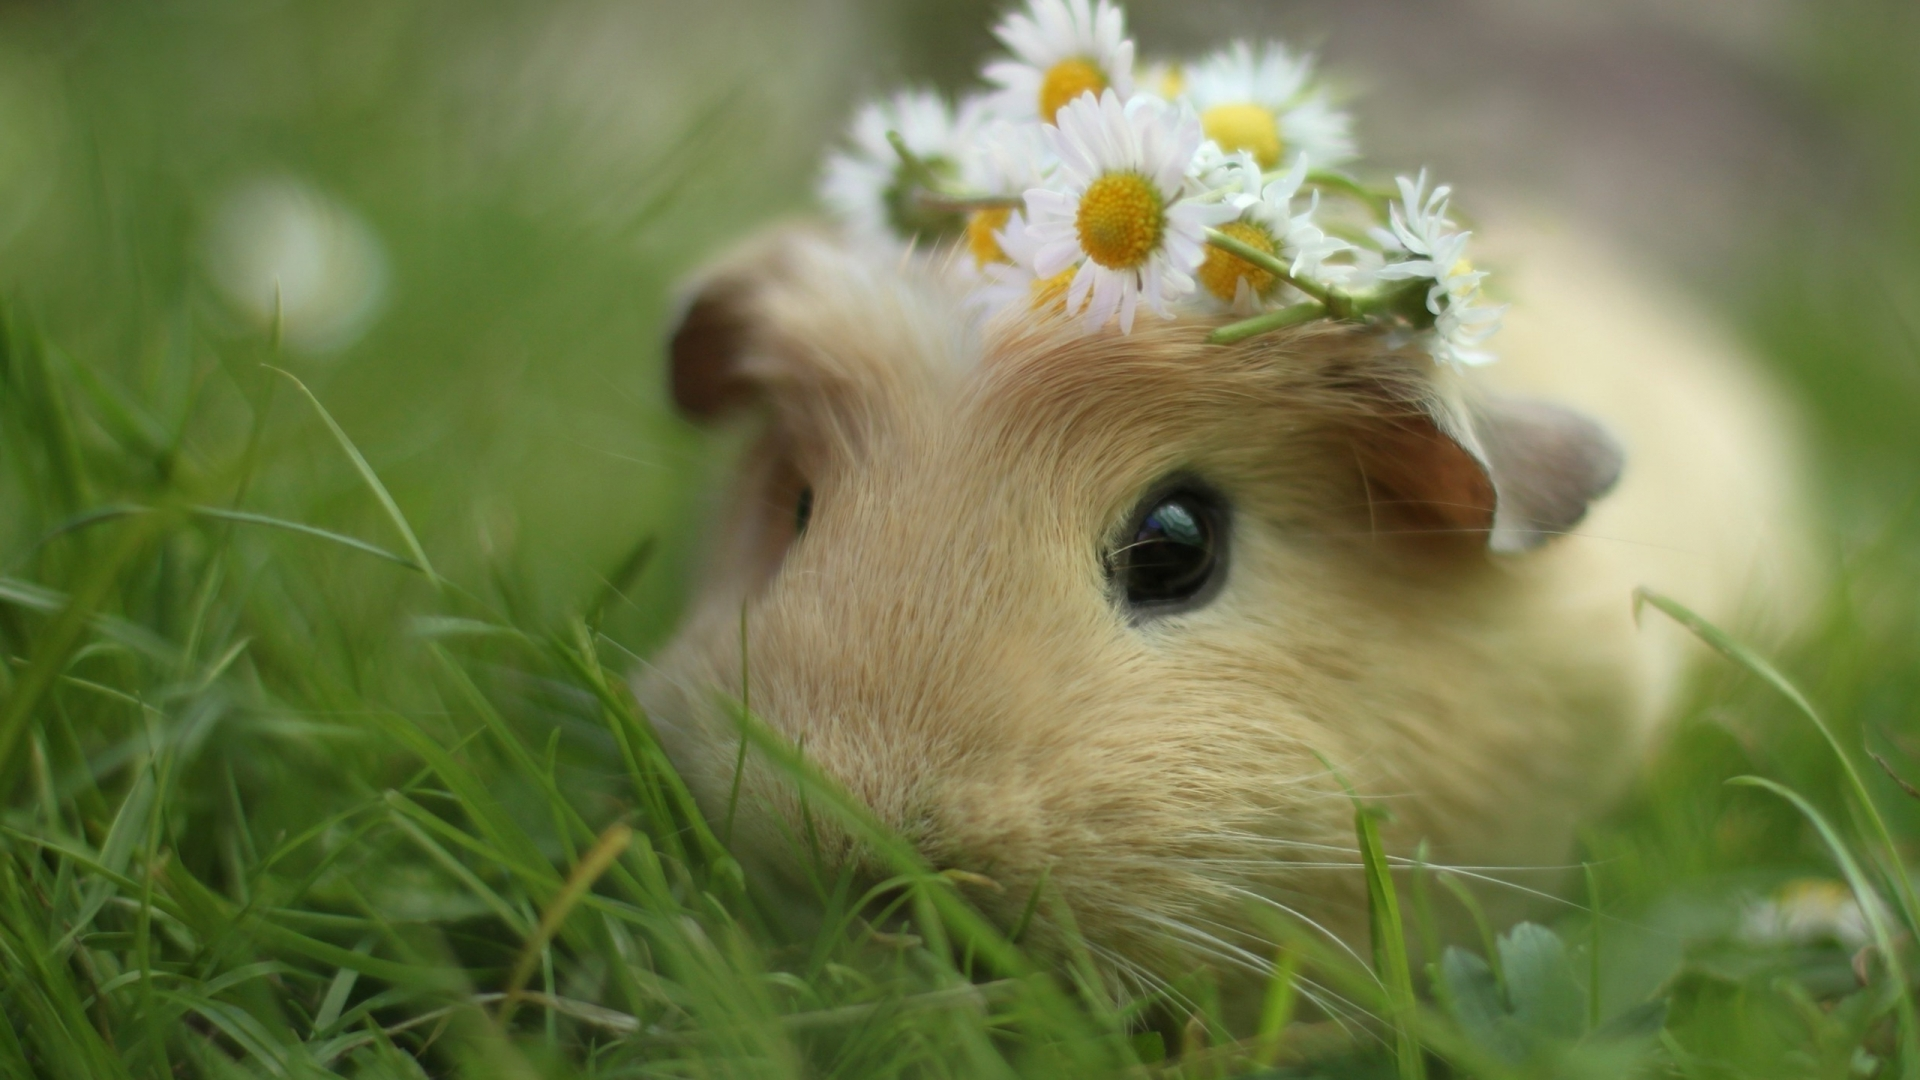 guinea pig cute - Google Search | Guinea Pigs CUTE | Pinterest ...